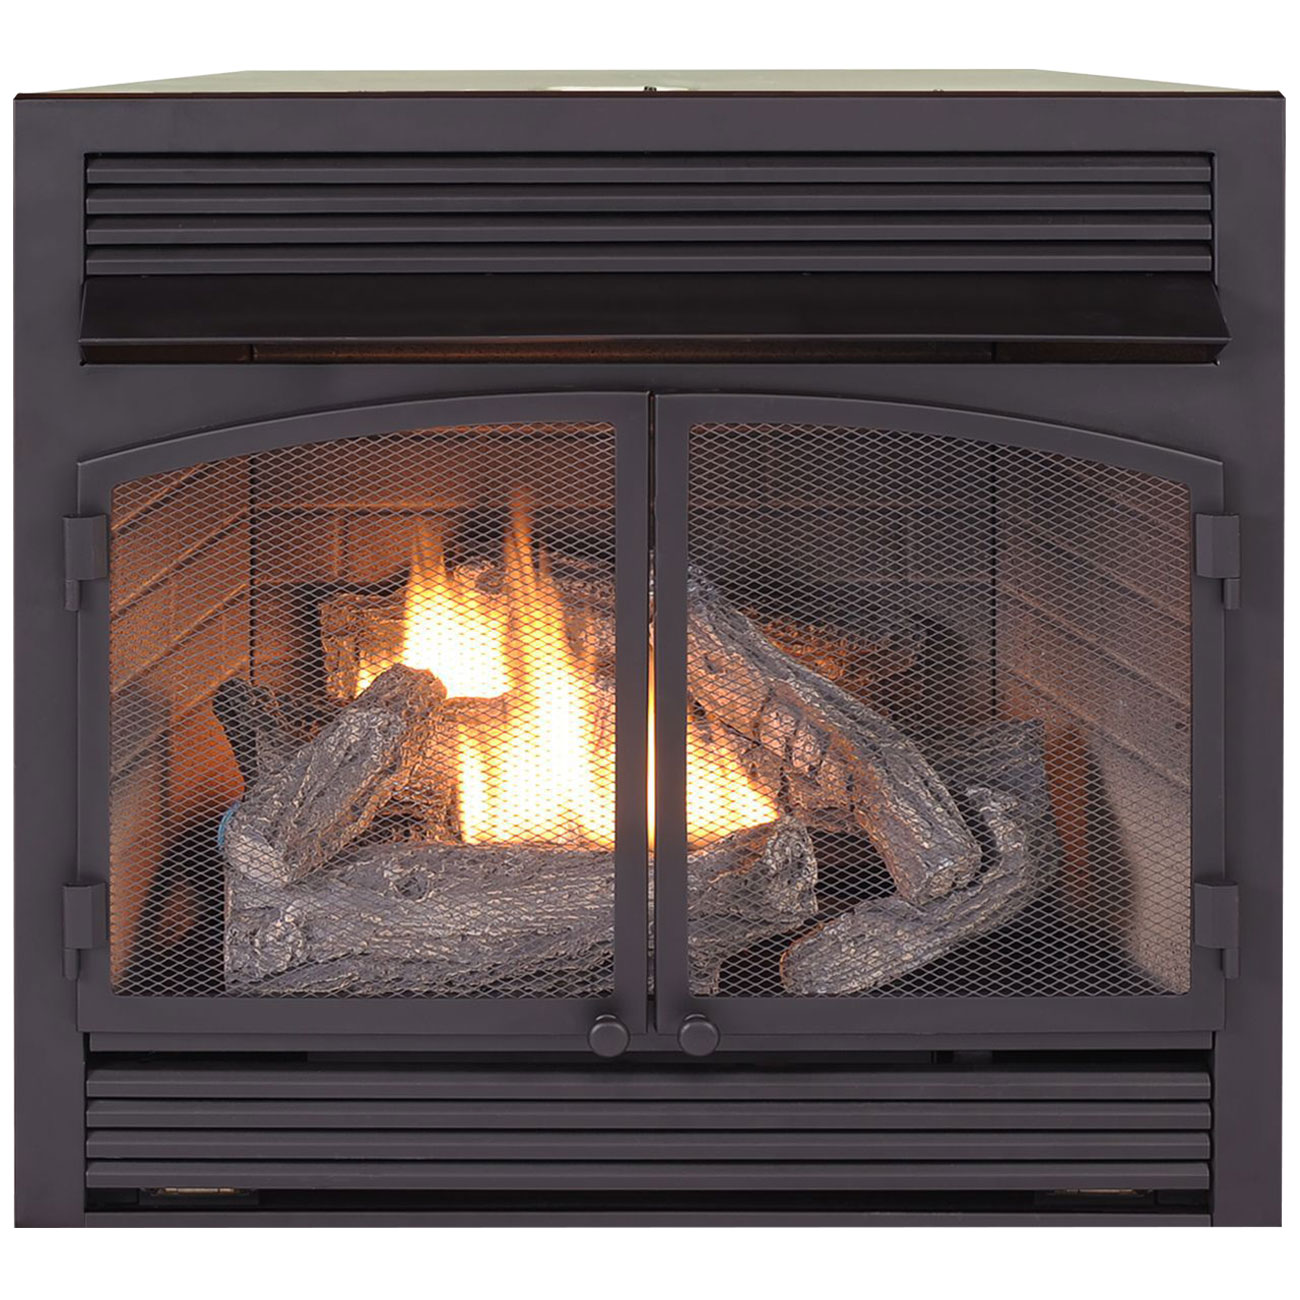 Wondrous Dual Fuel Fireplace Insert Zero Clearance 32 000 Btu Procom Heating Home Interior And Landscaping Ponolsignezvosmurscom